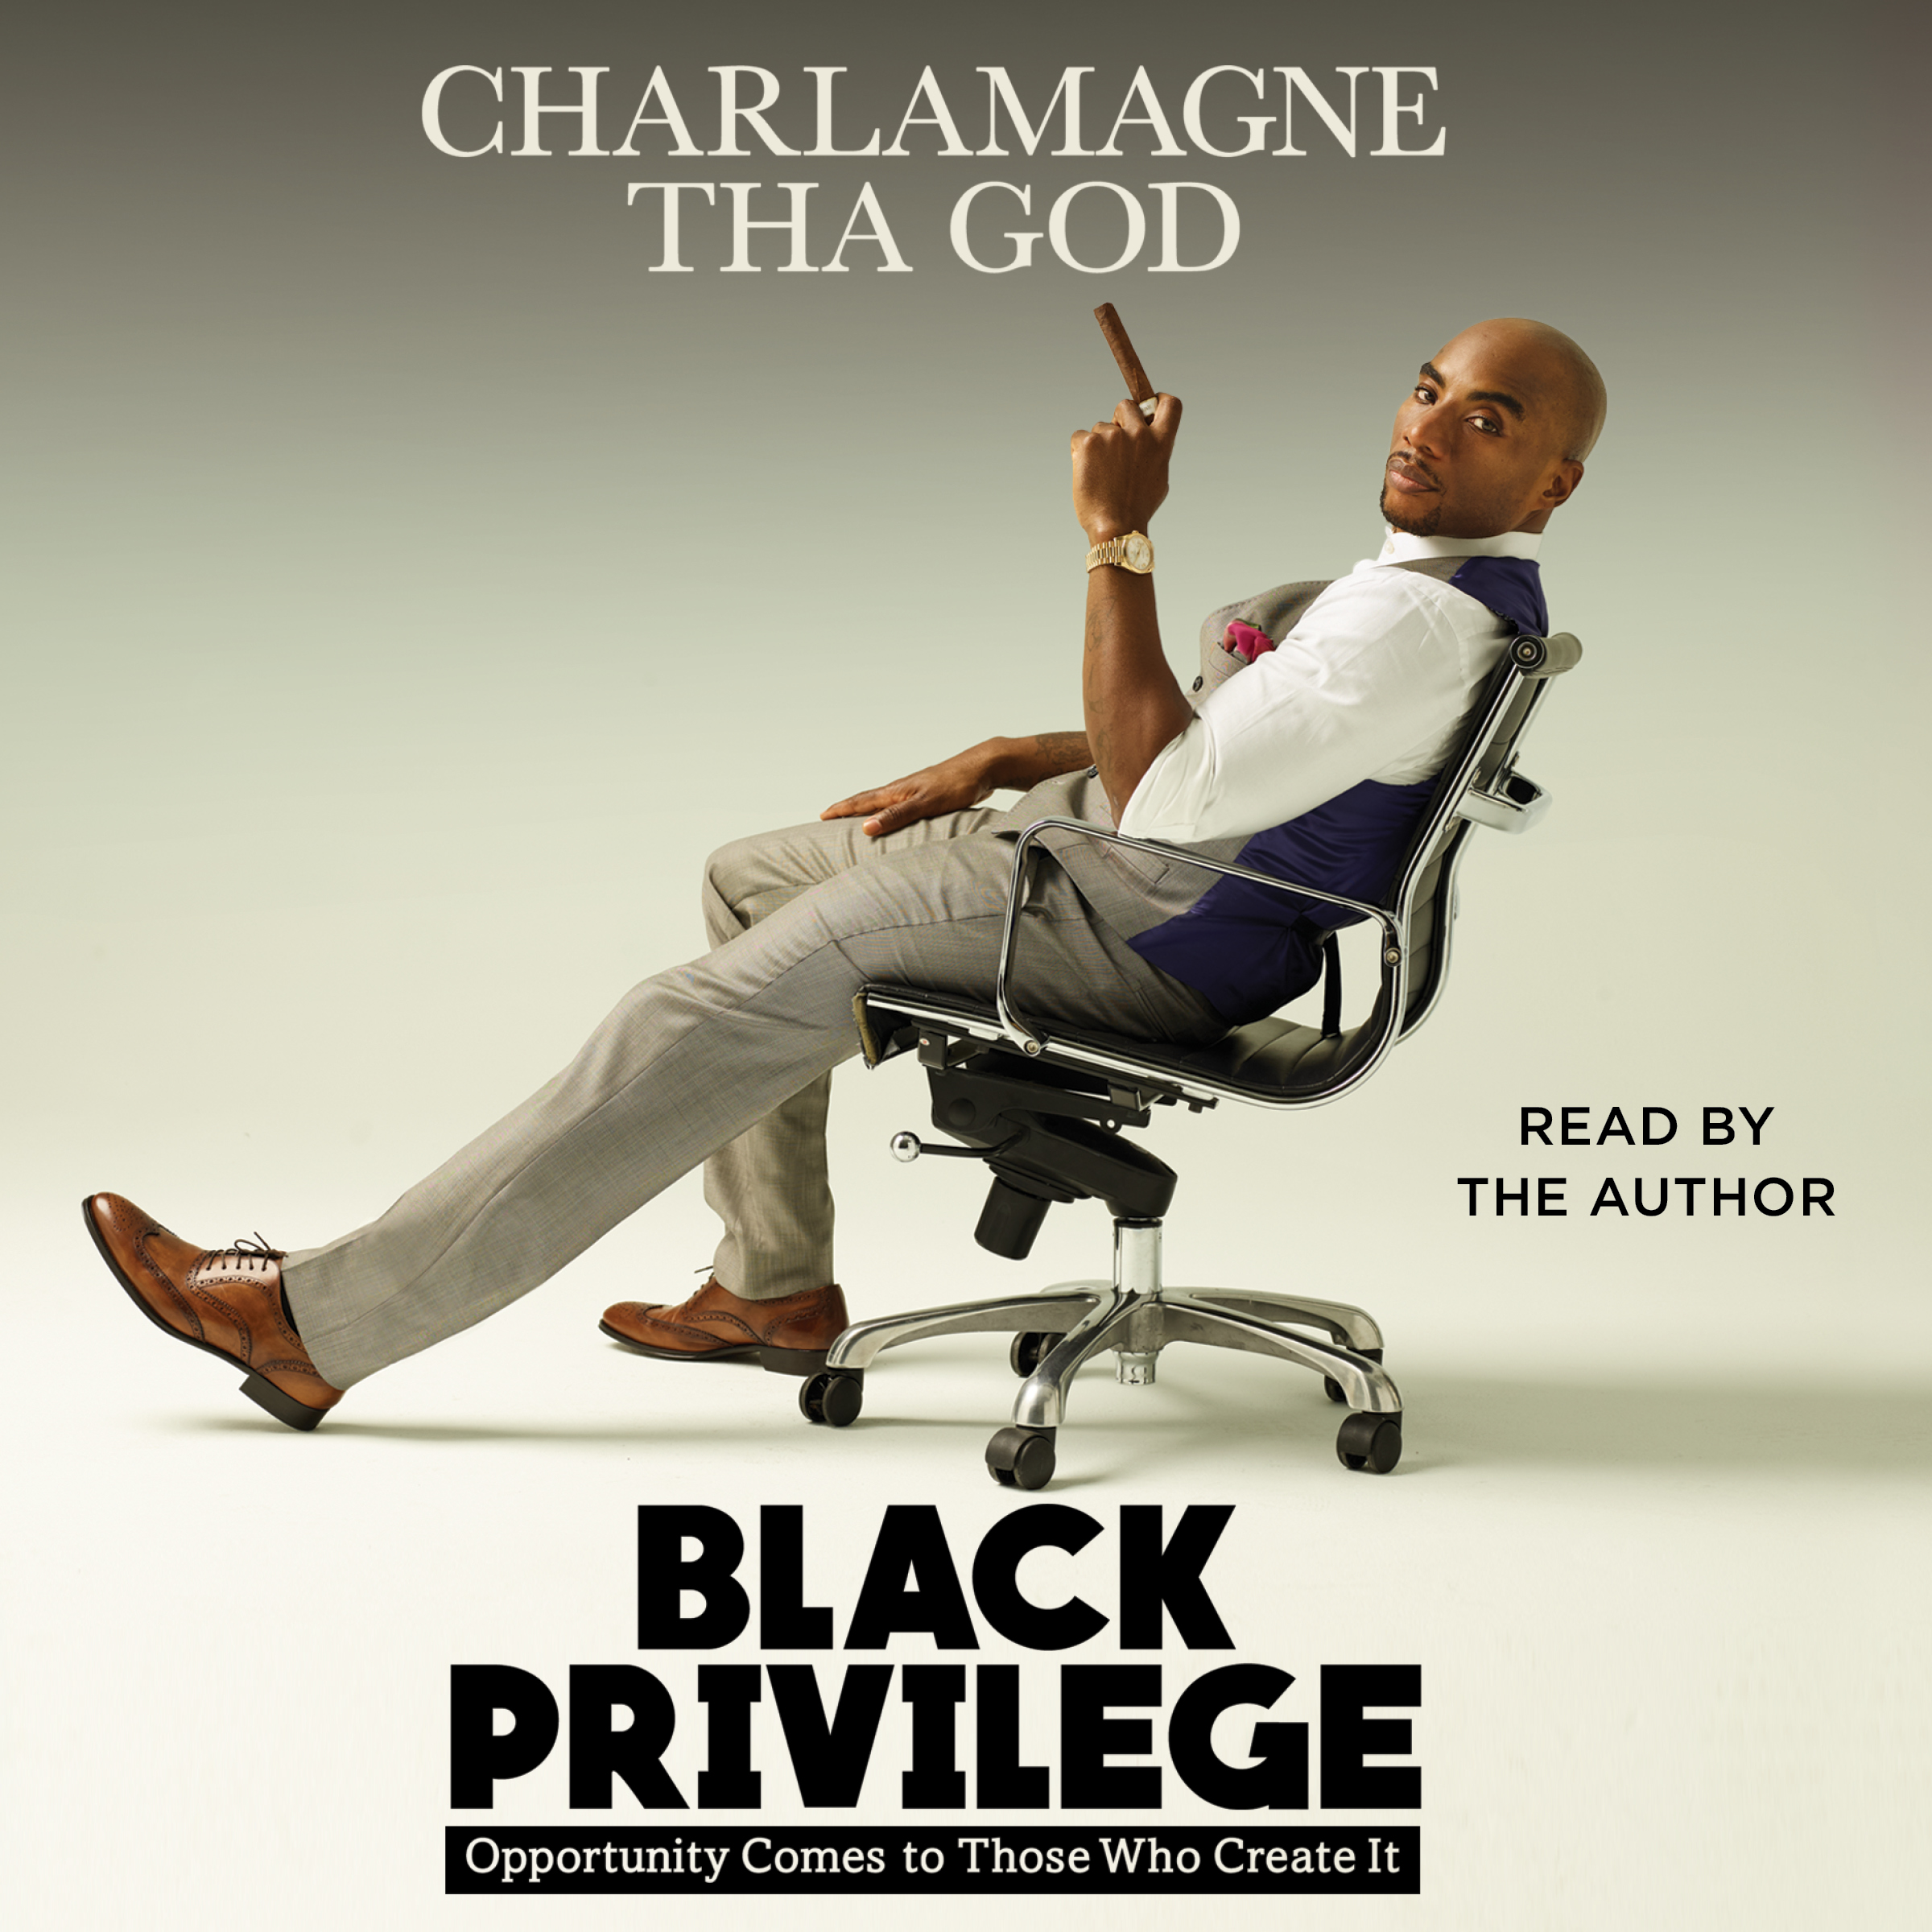 Black privilege 9781508237778 hr